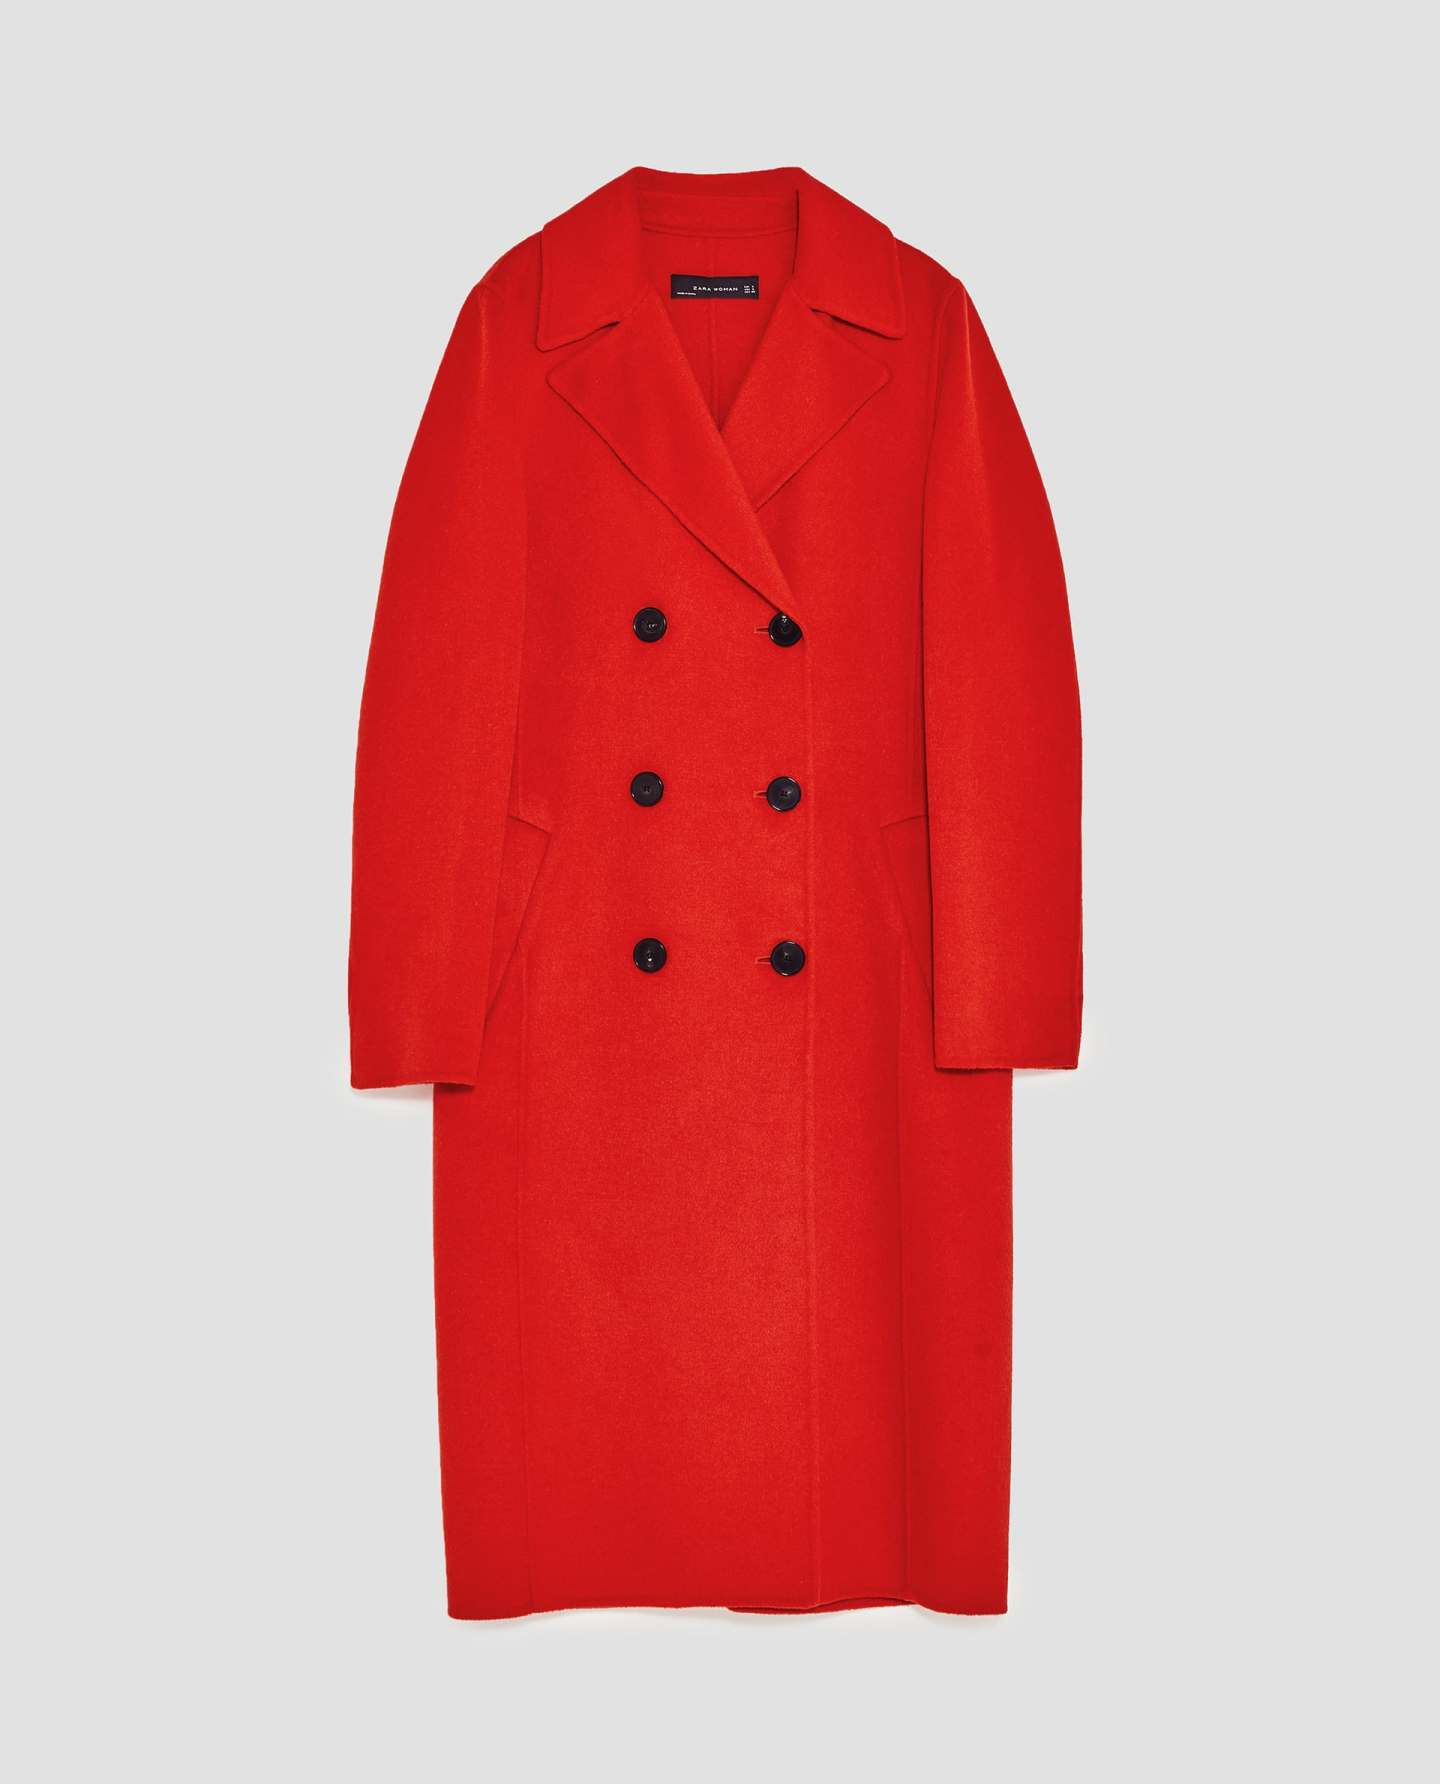 Zara red coat